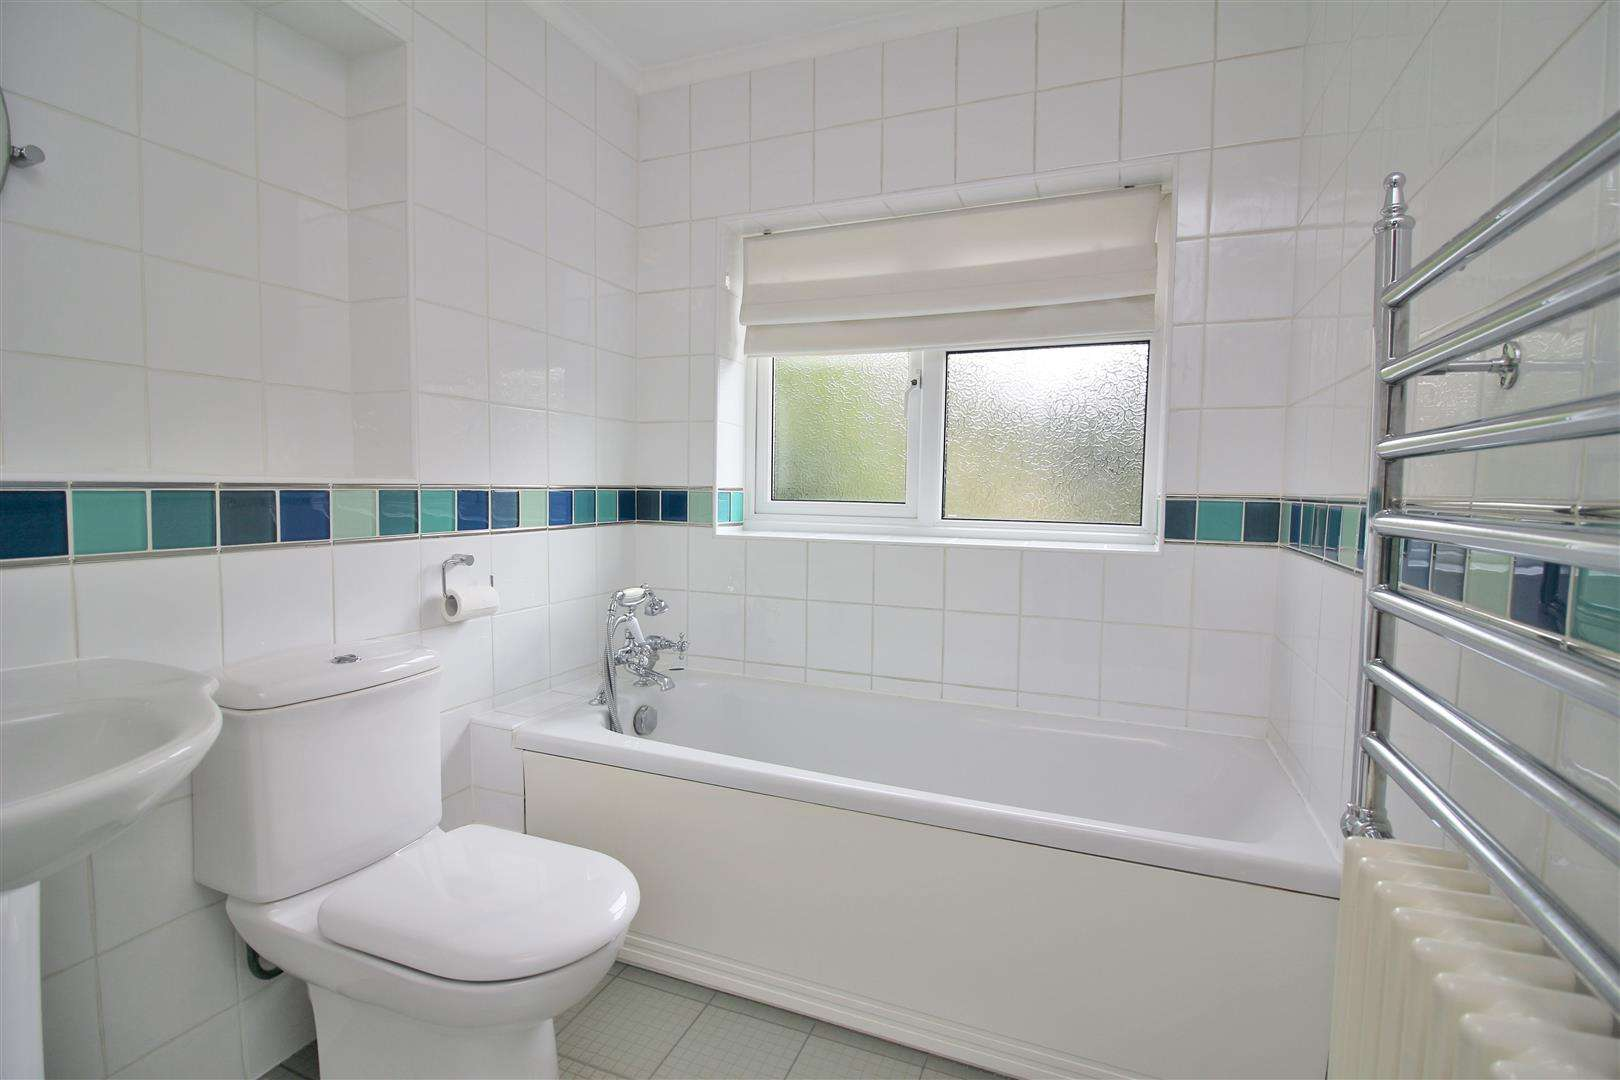 5 bed for sale - (Property Image 12)